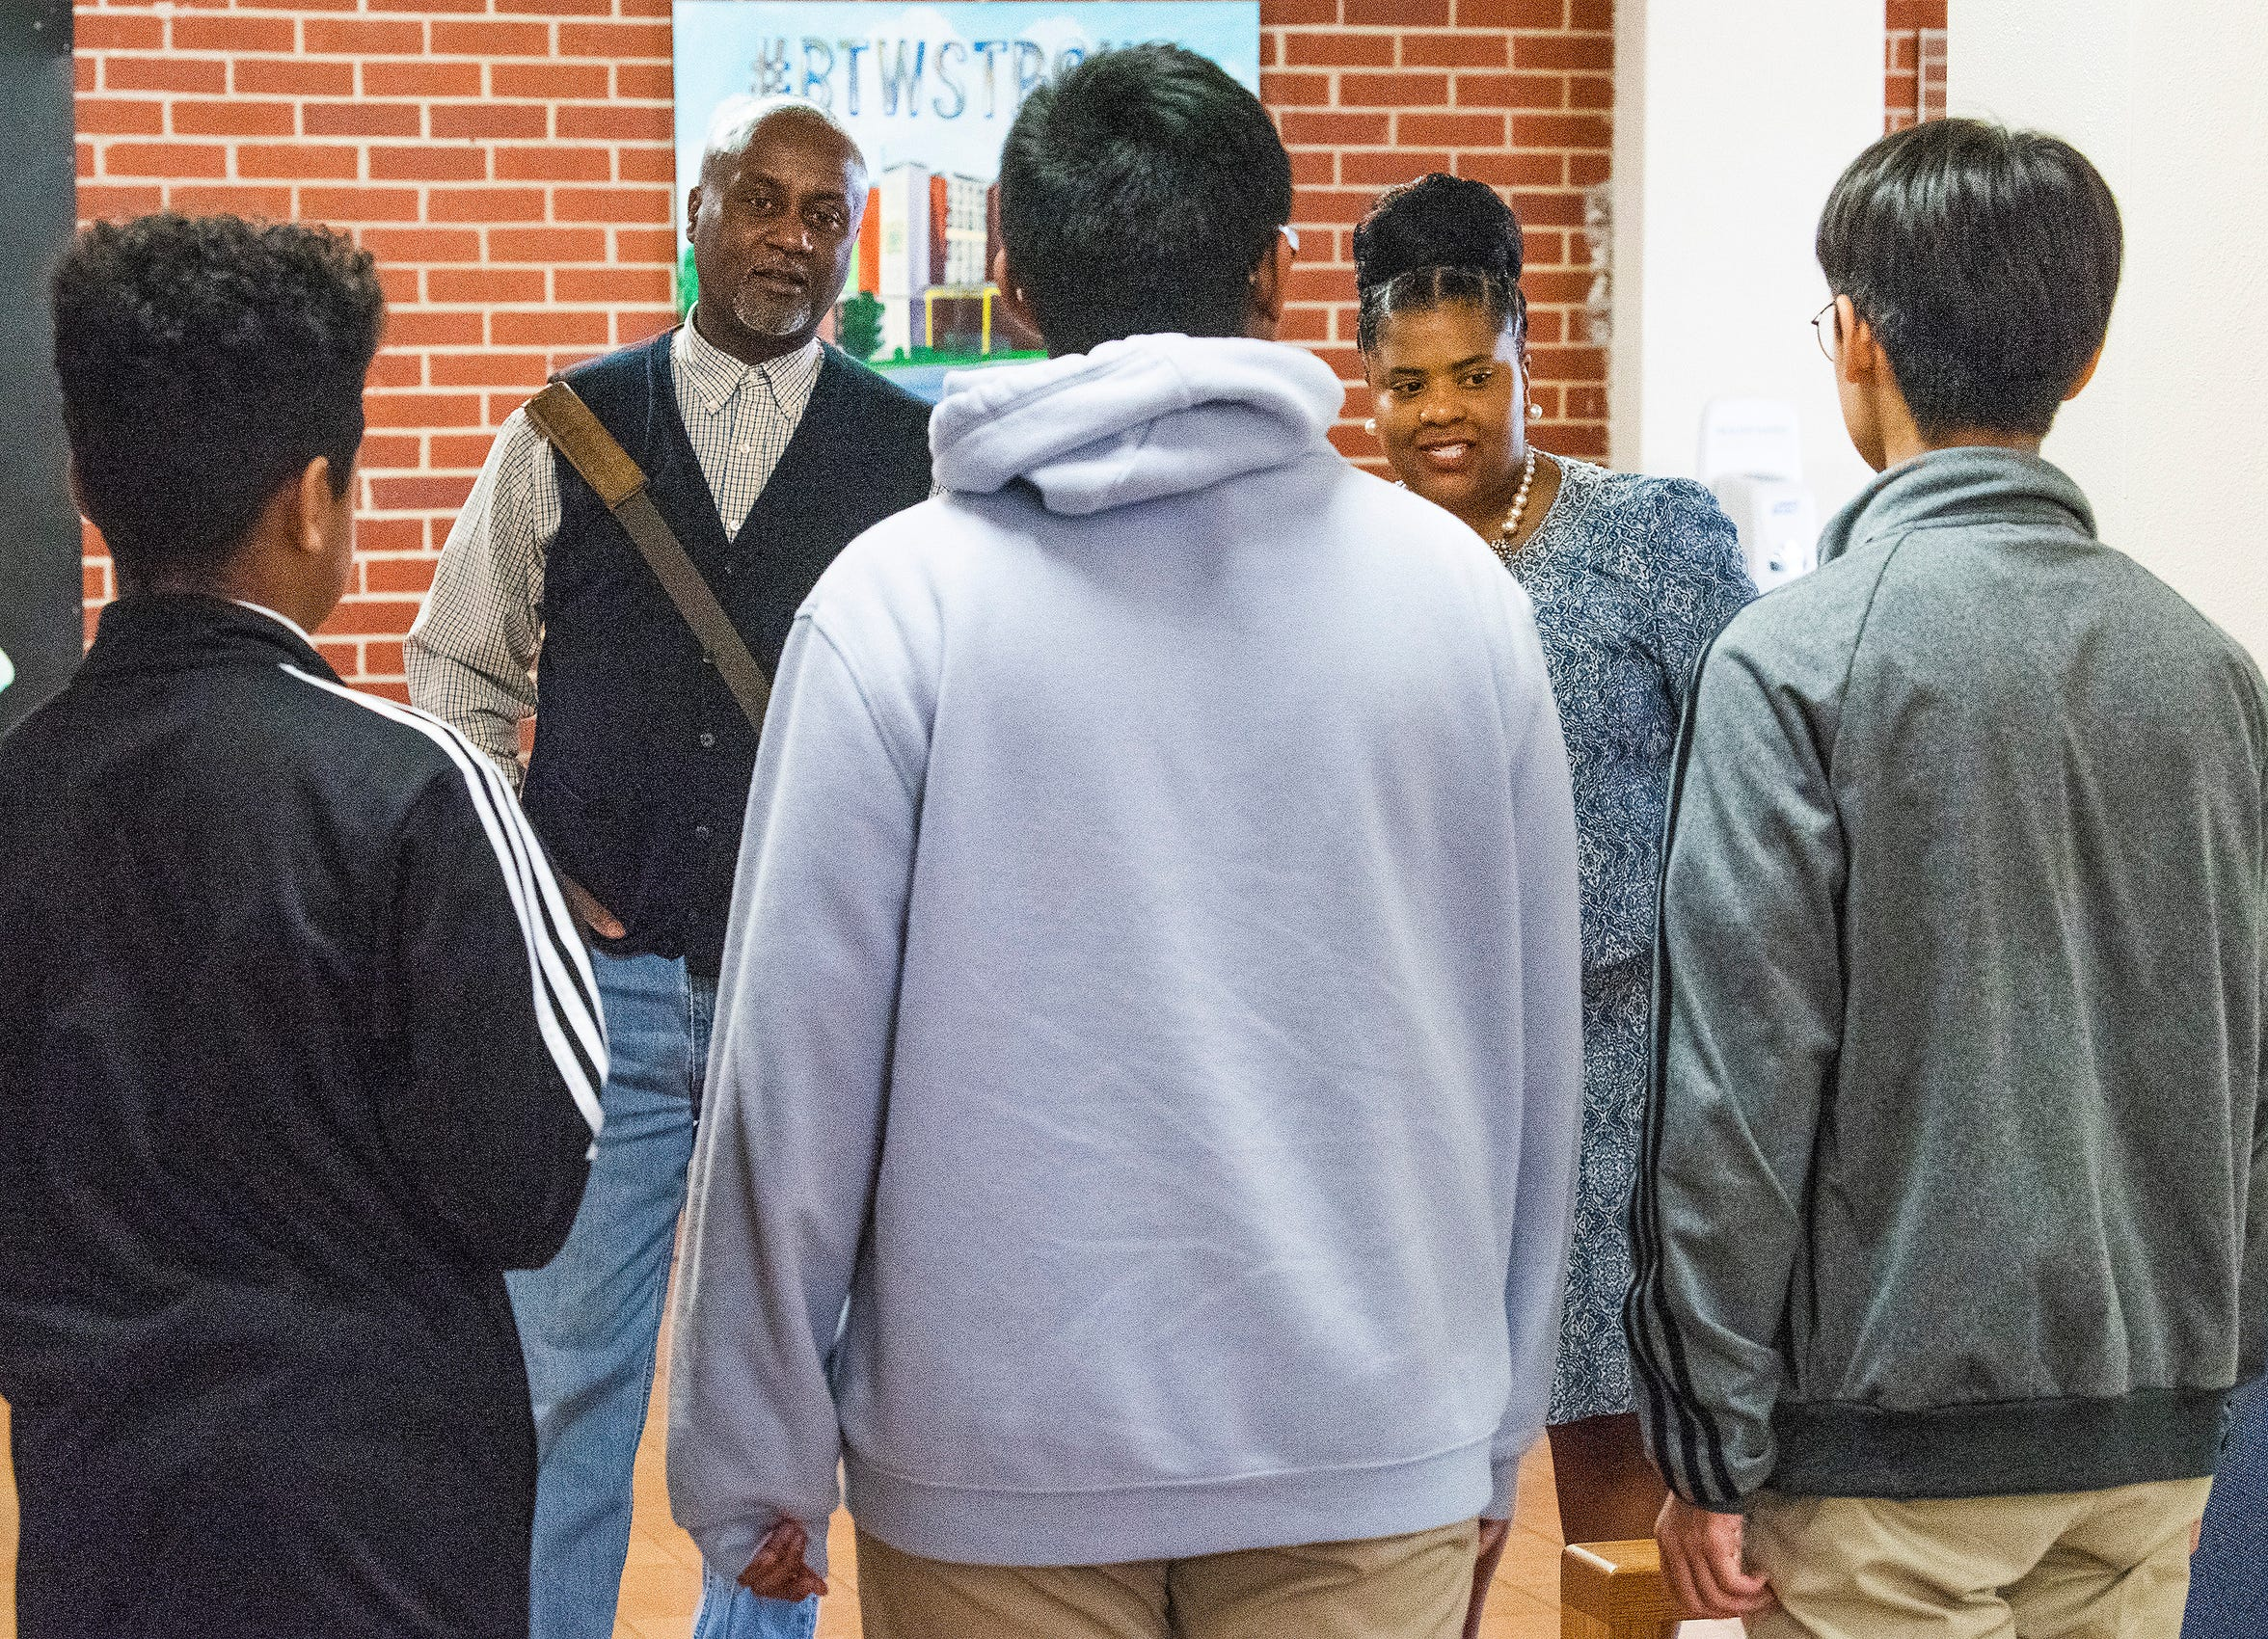 Local entrepreneur Boyd Stephens, left, and Booker T. Washington Magnet School Principal Quesha Starks, right, talk with computer students at the school in Montgomery, Ala., on Friday October 4, 2019.